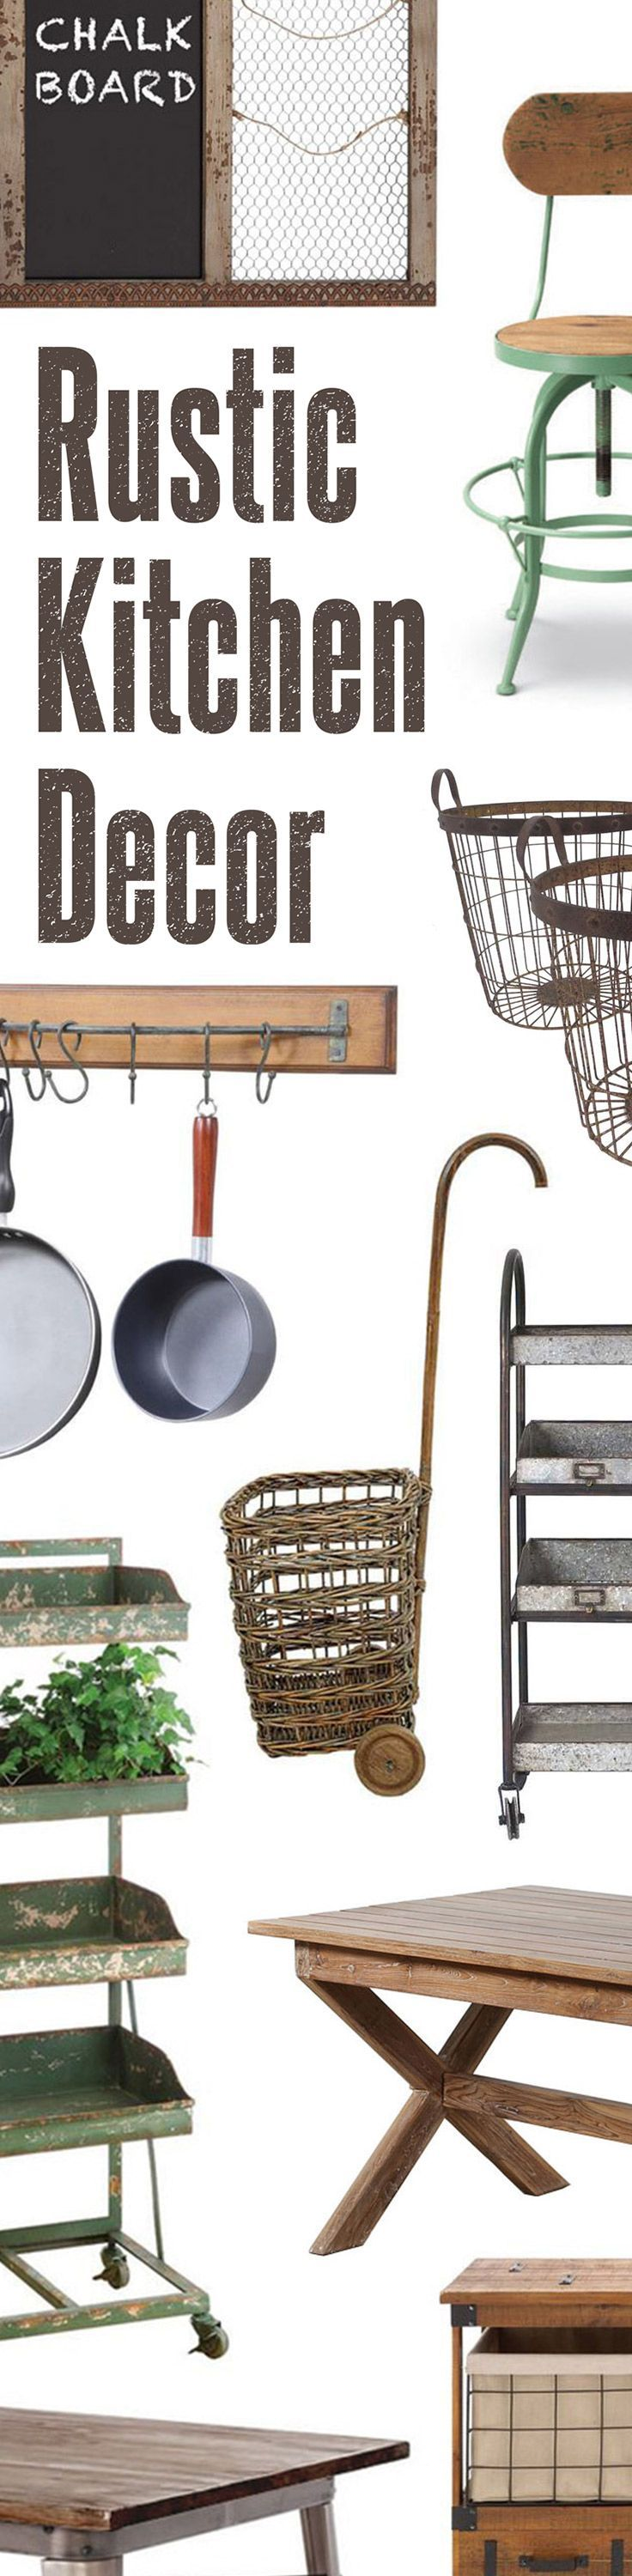 Rustic Kitchen Décor   Up to 60% Off at dotandbo.com